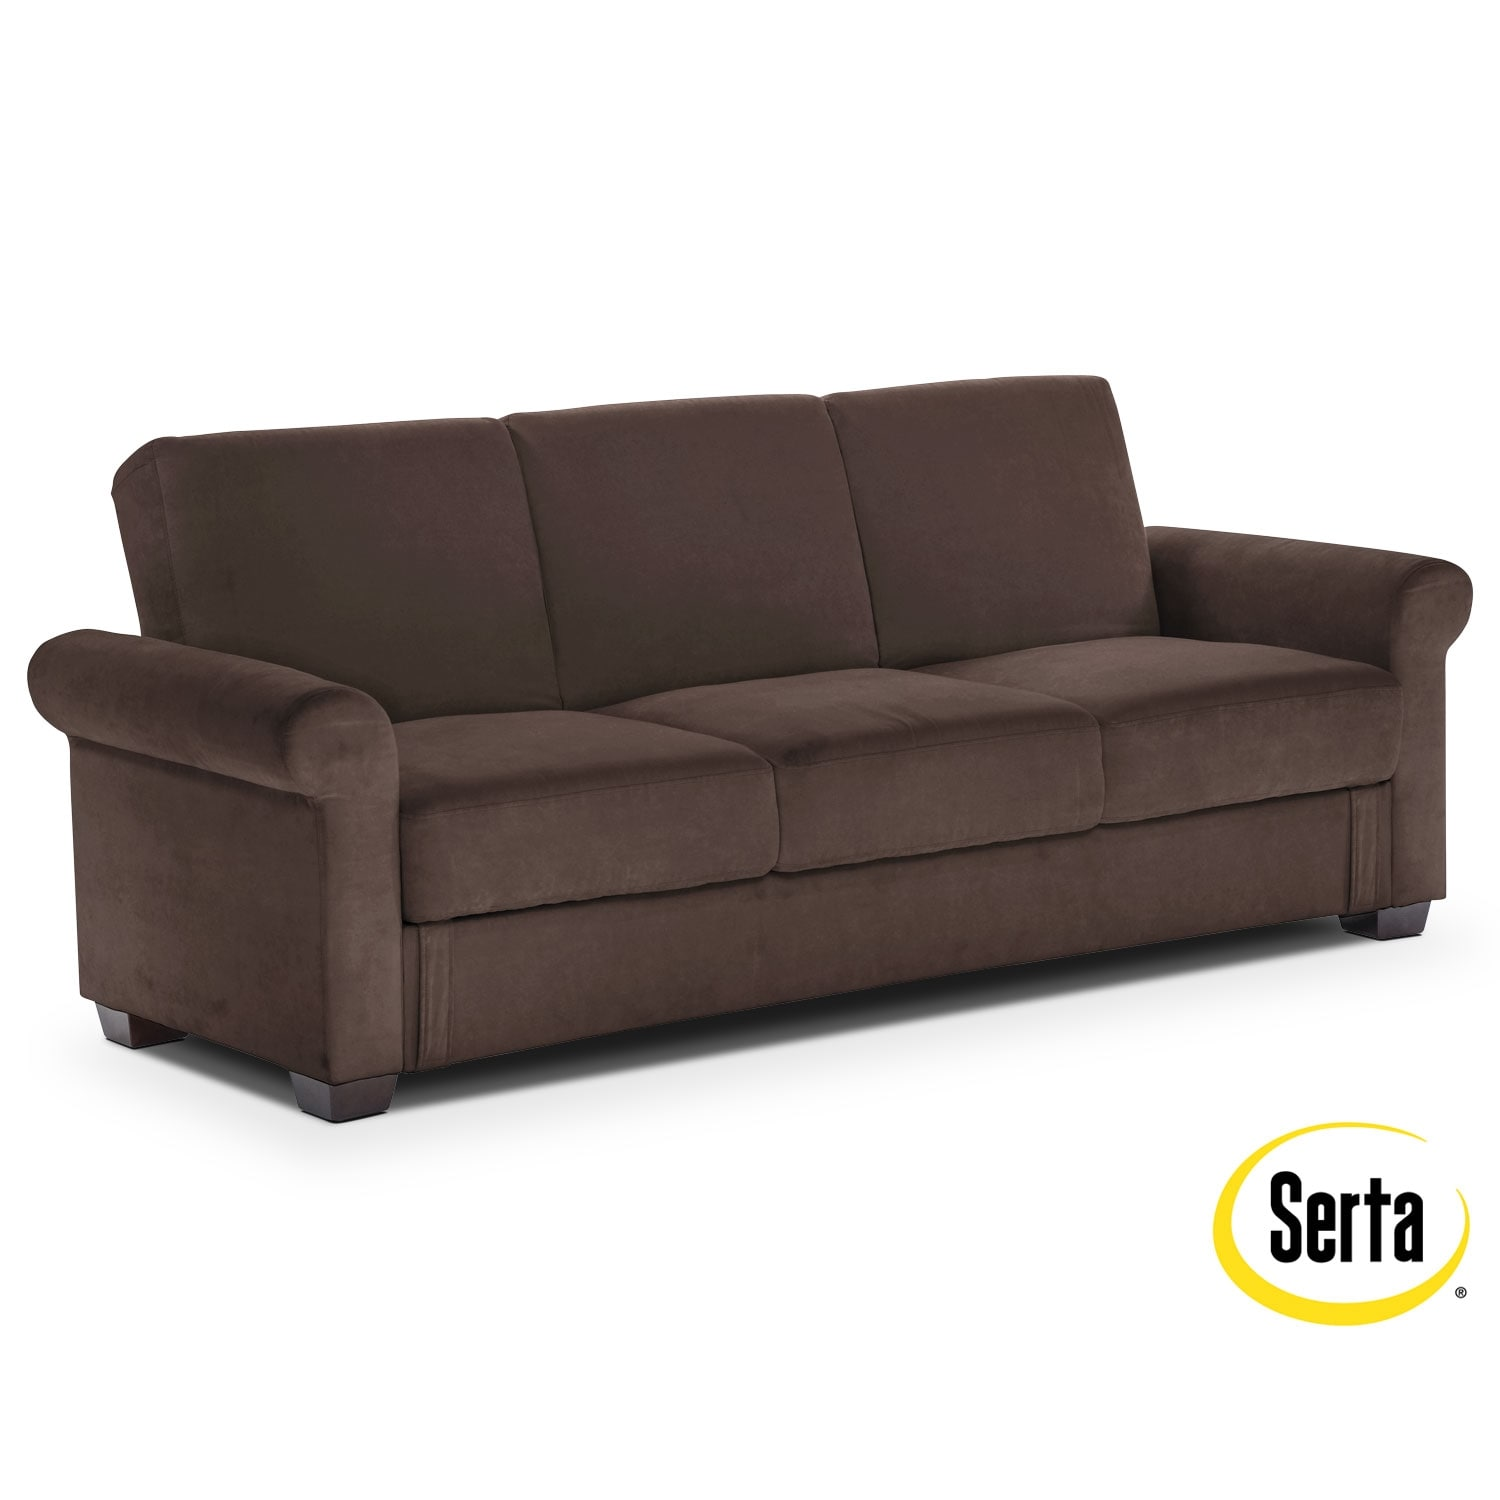 Living Room Furniture - Thomas Futon Sofa Bed with Storage